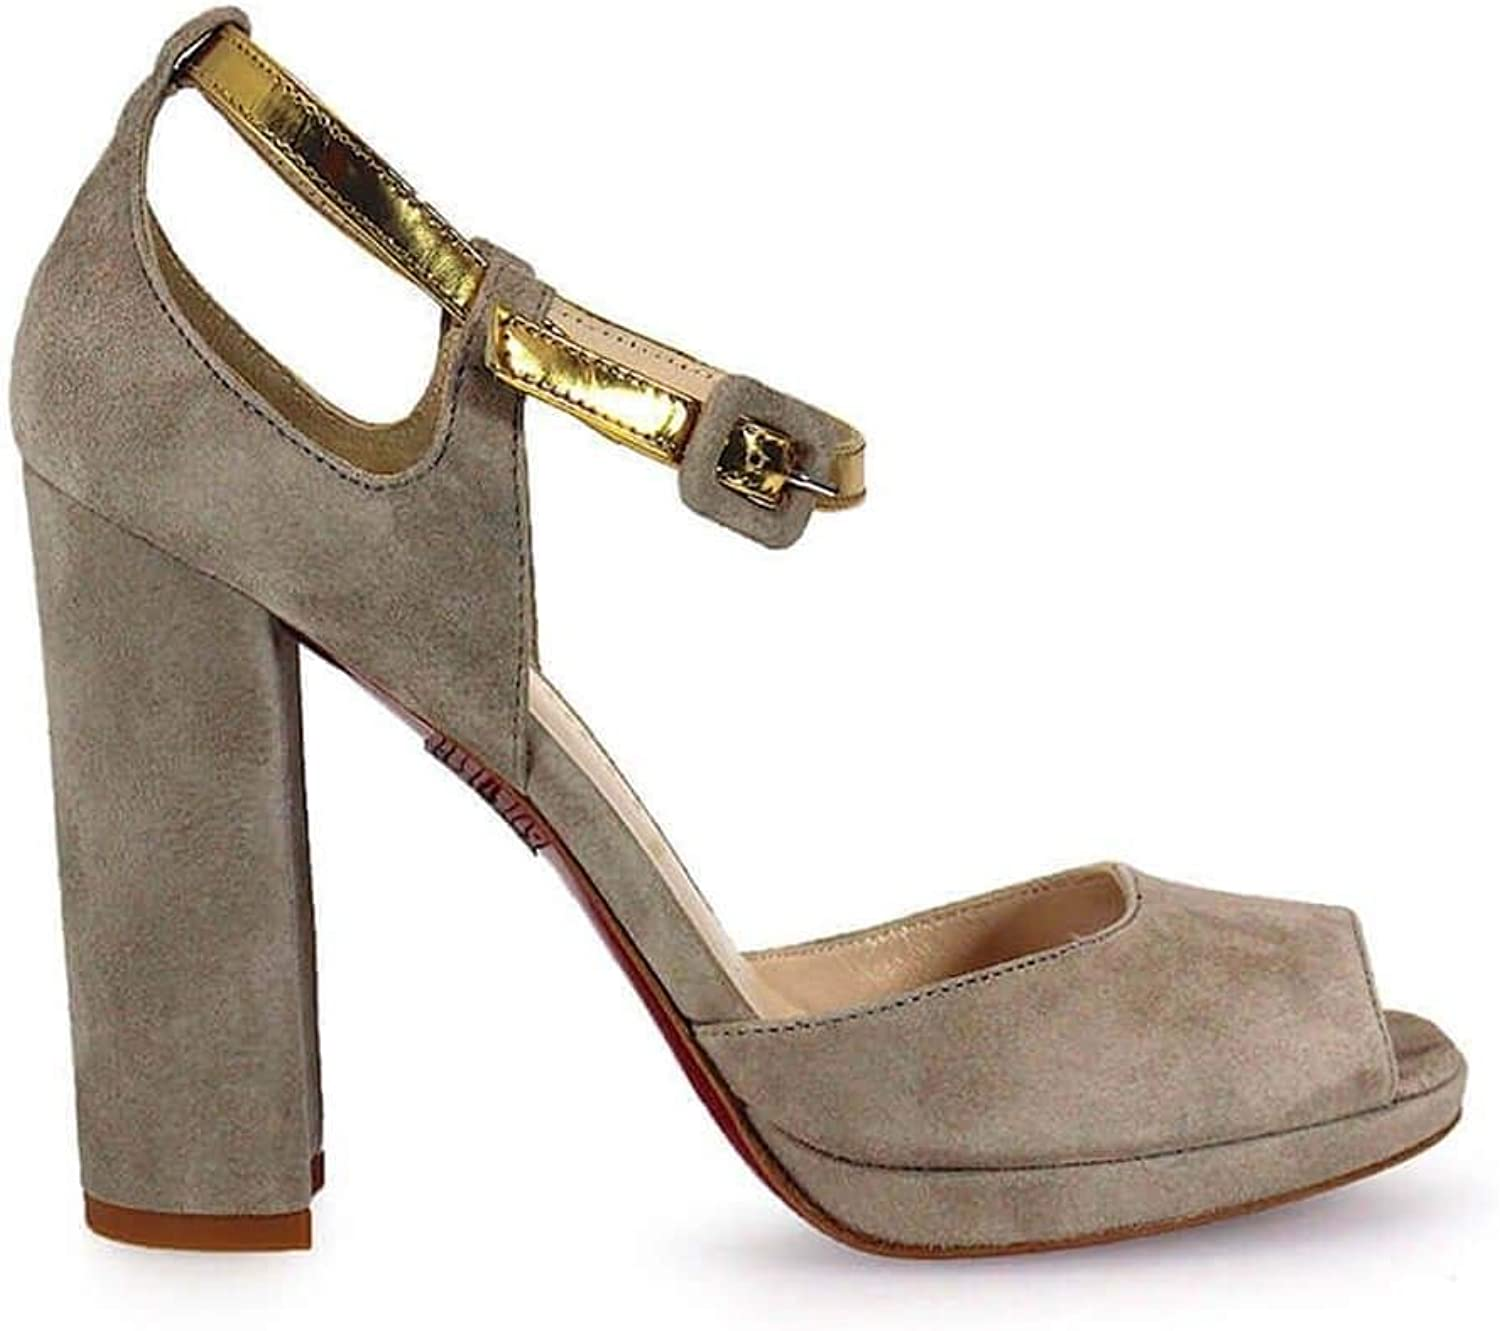 FRANCO COLLI Women's FC1035 Grey Suede Sandals